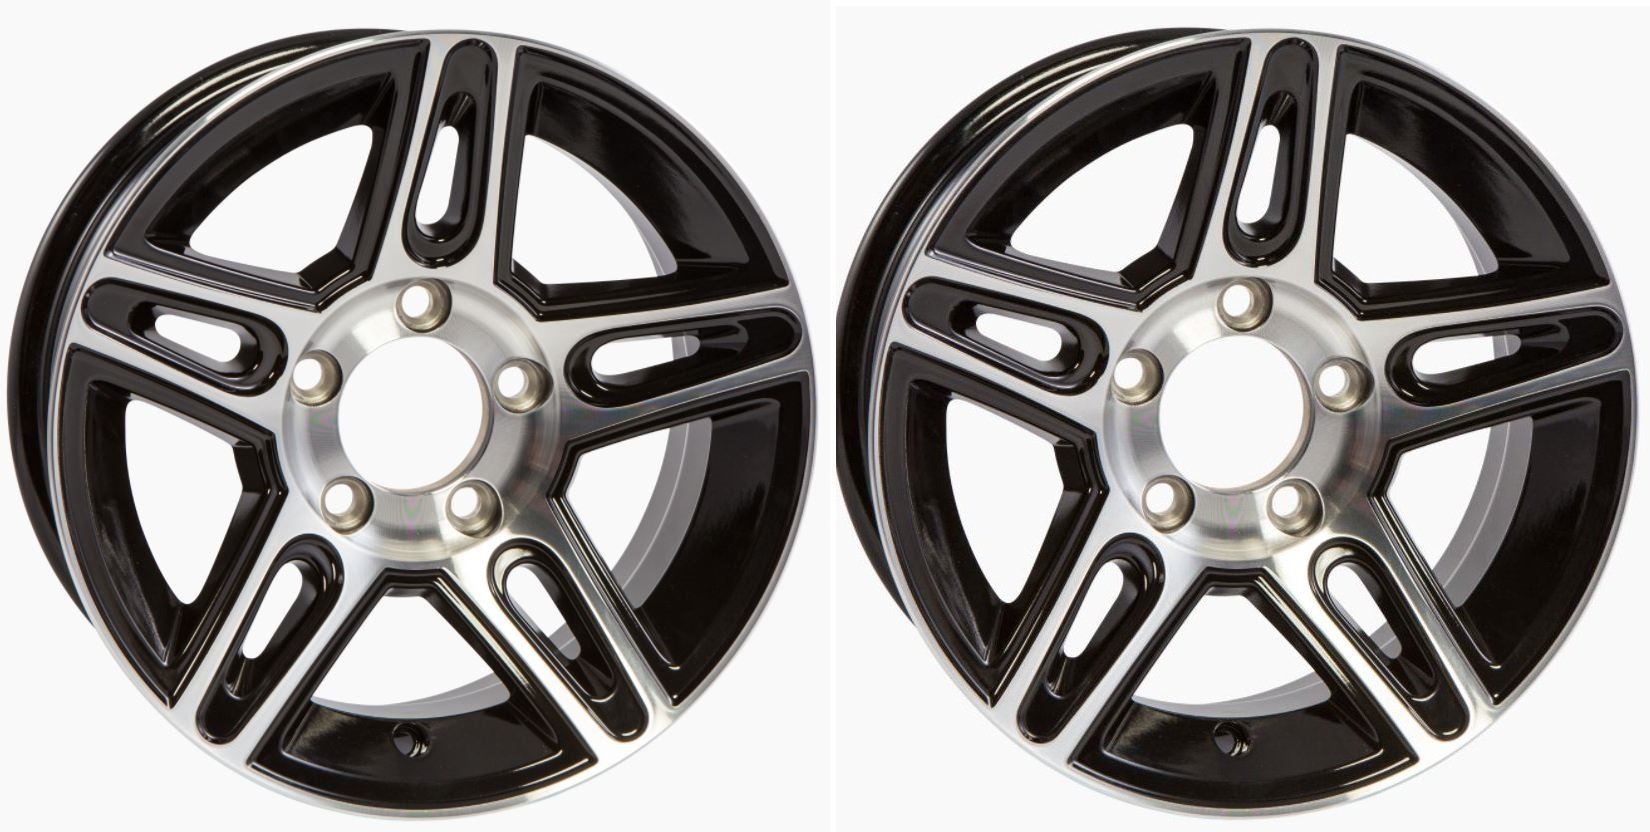 "eCustomRim TWO (2) Aluminum Sendel Trailer Rims Wheels 5 Lug 14"" Pinnacle Black Style"